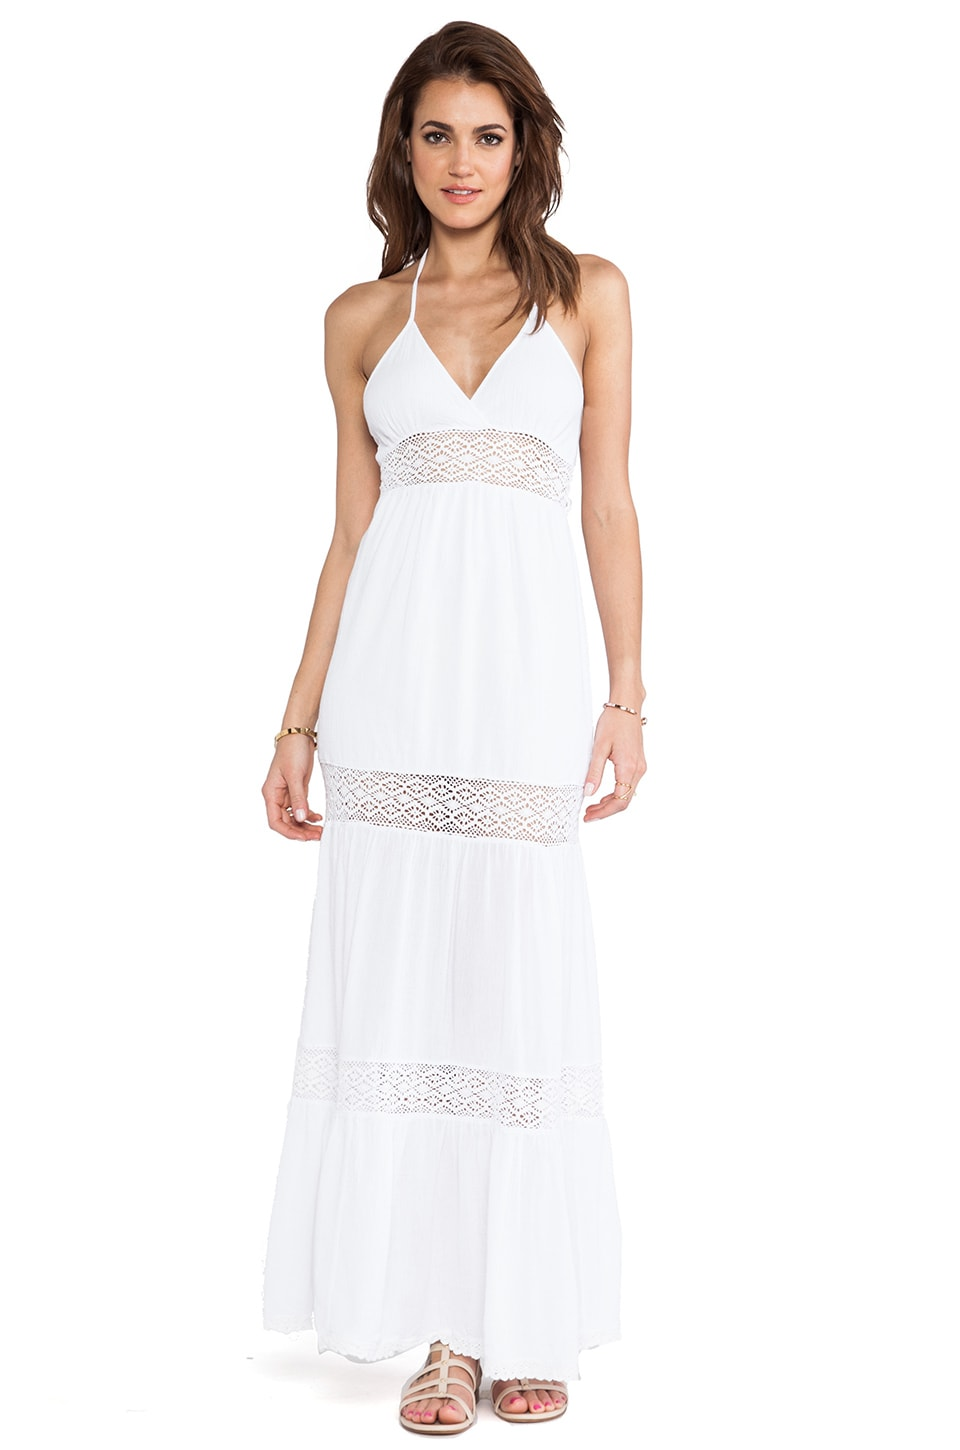 Surf Gypsy Maxi Dress in Ivory